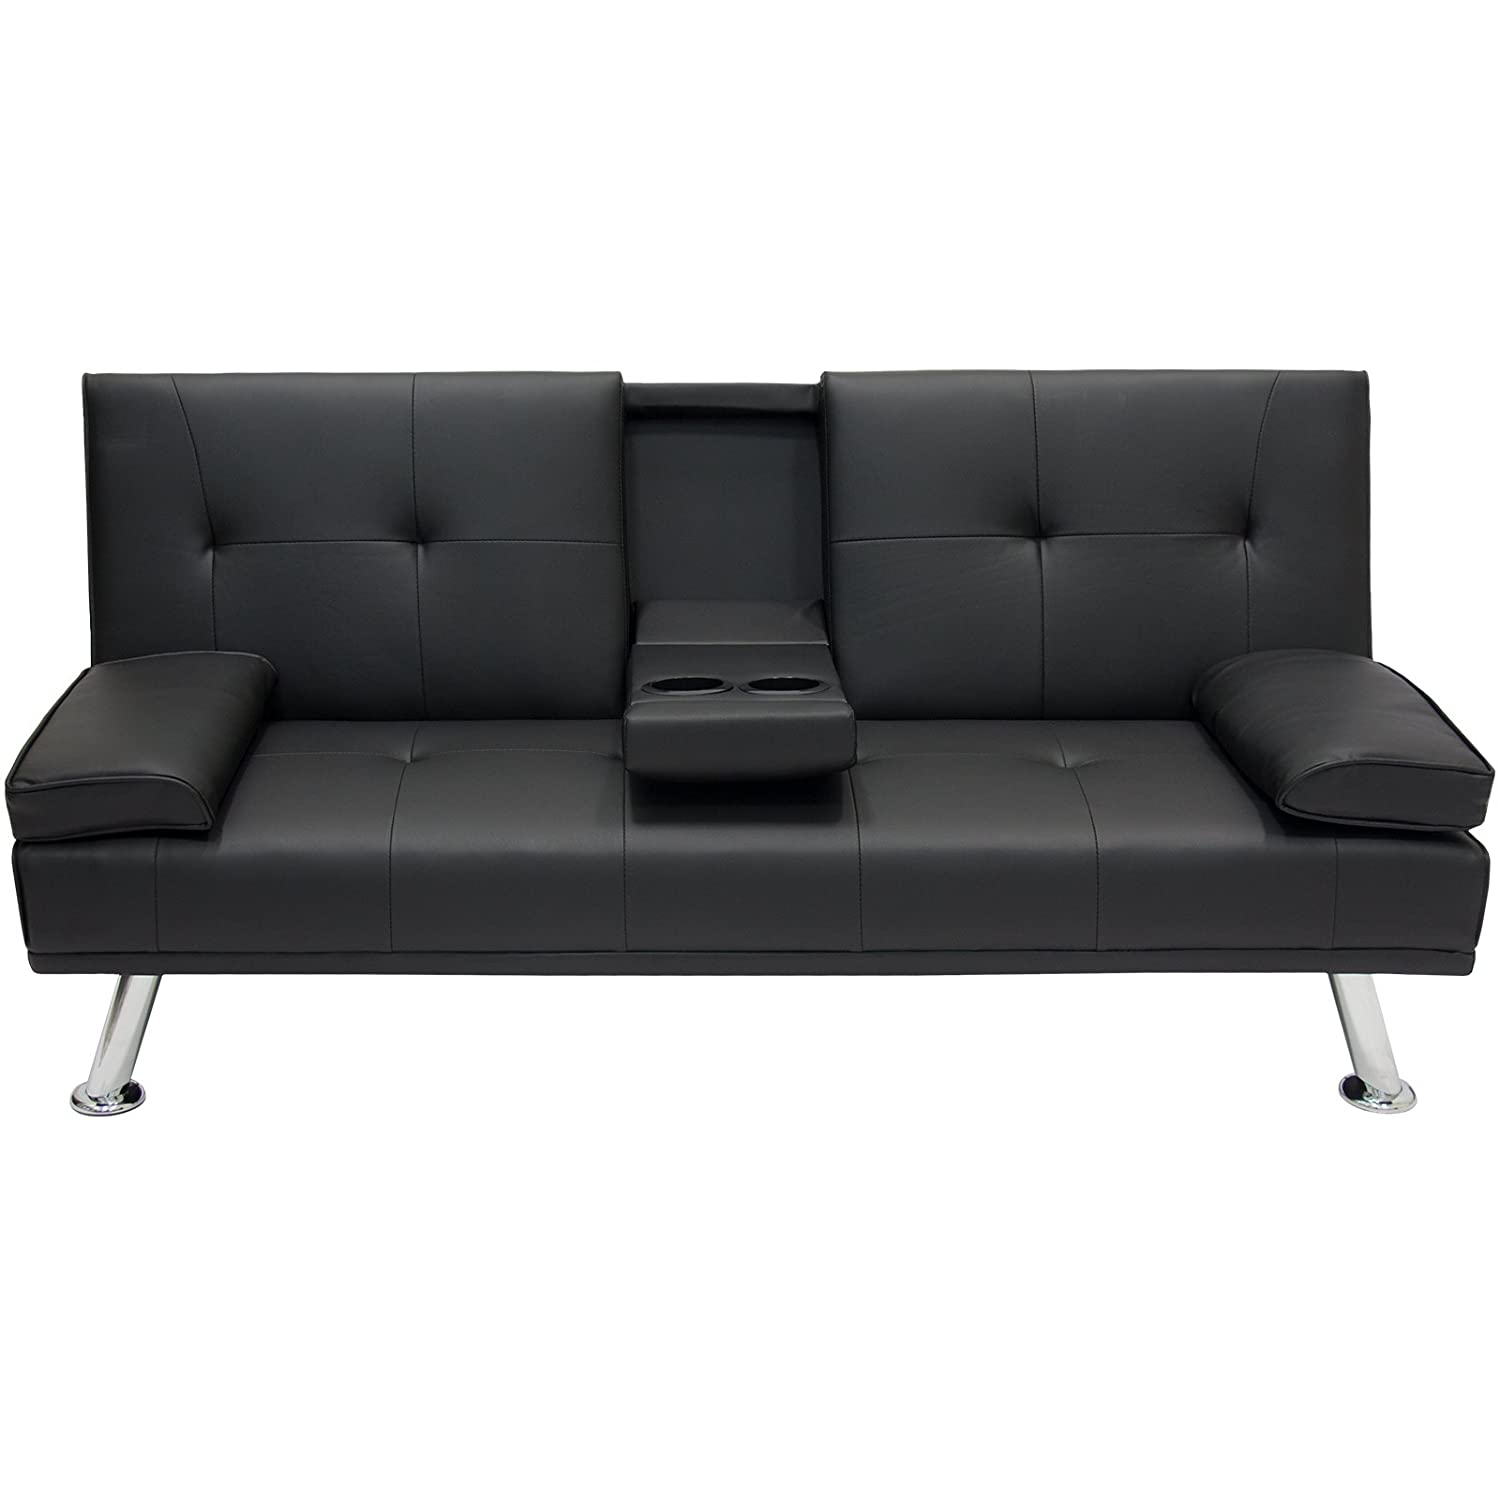 Cheap Couches For Sale Under $200 Top Couches Review